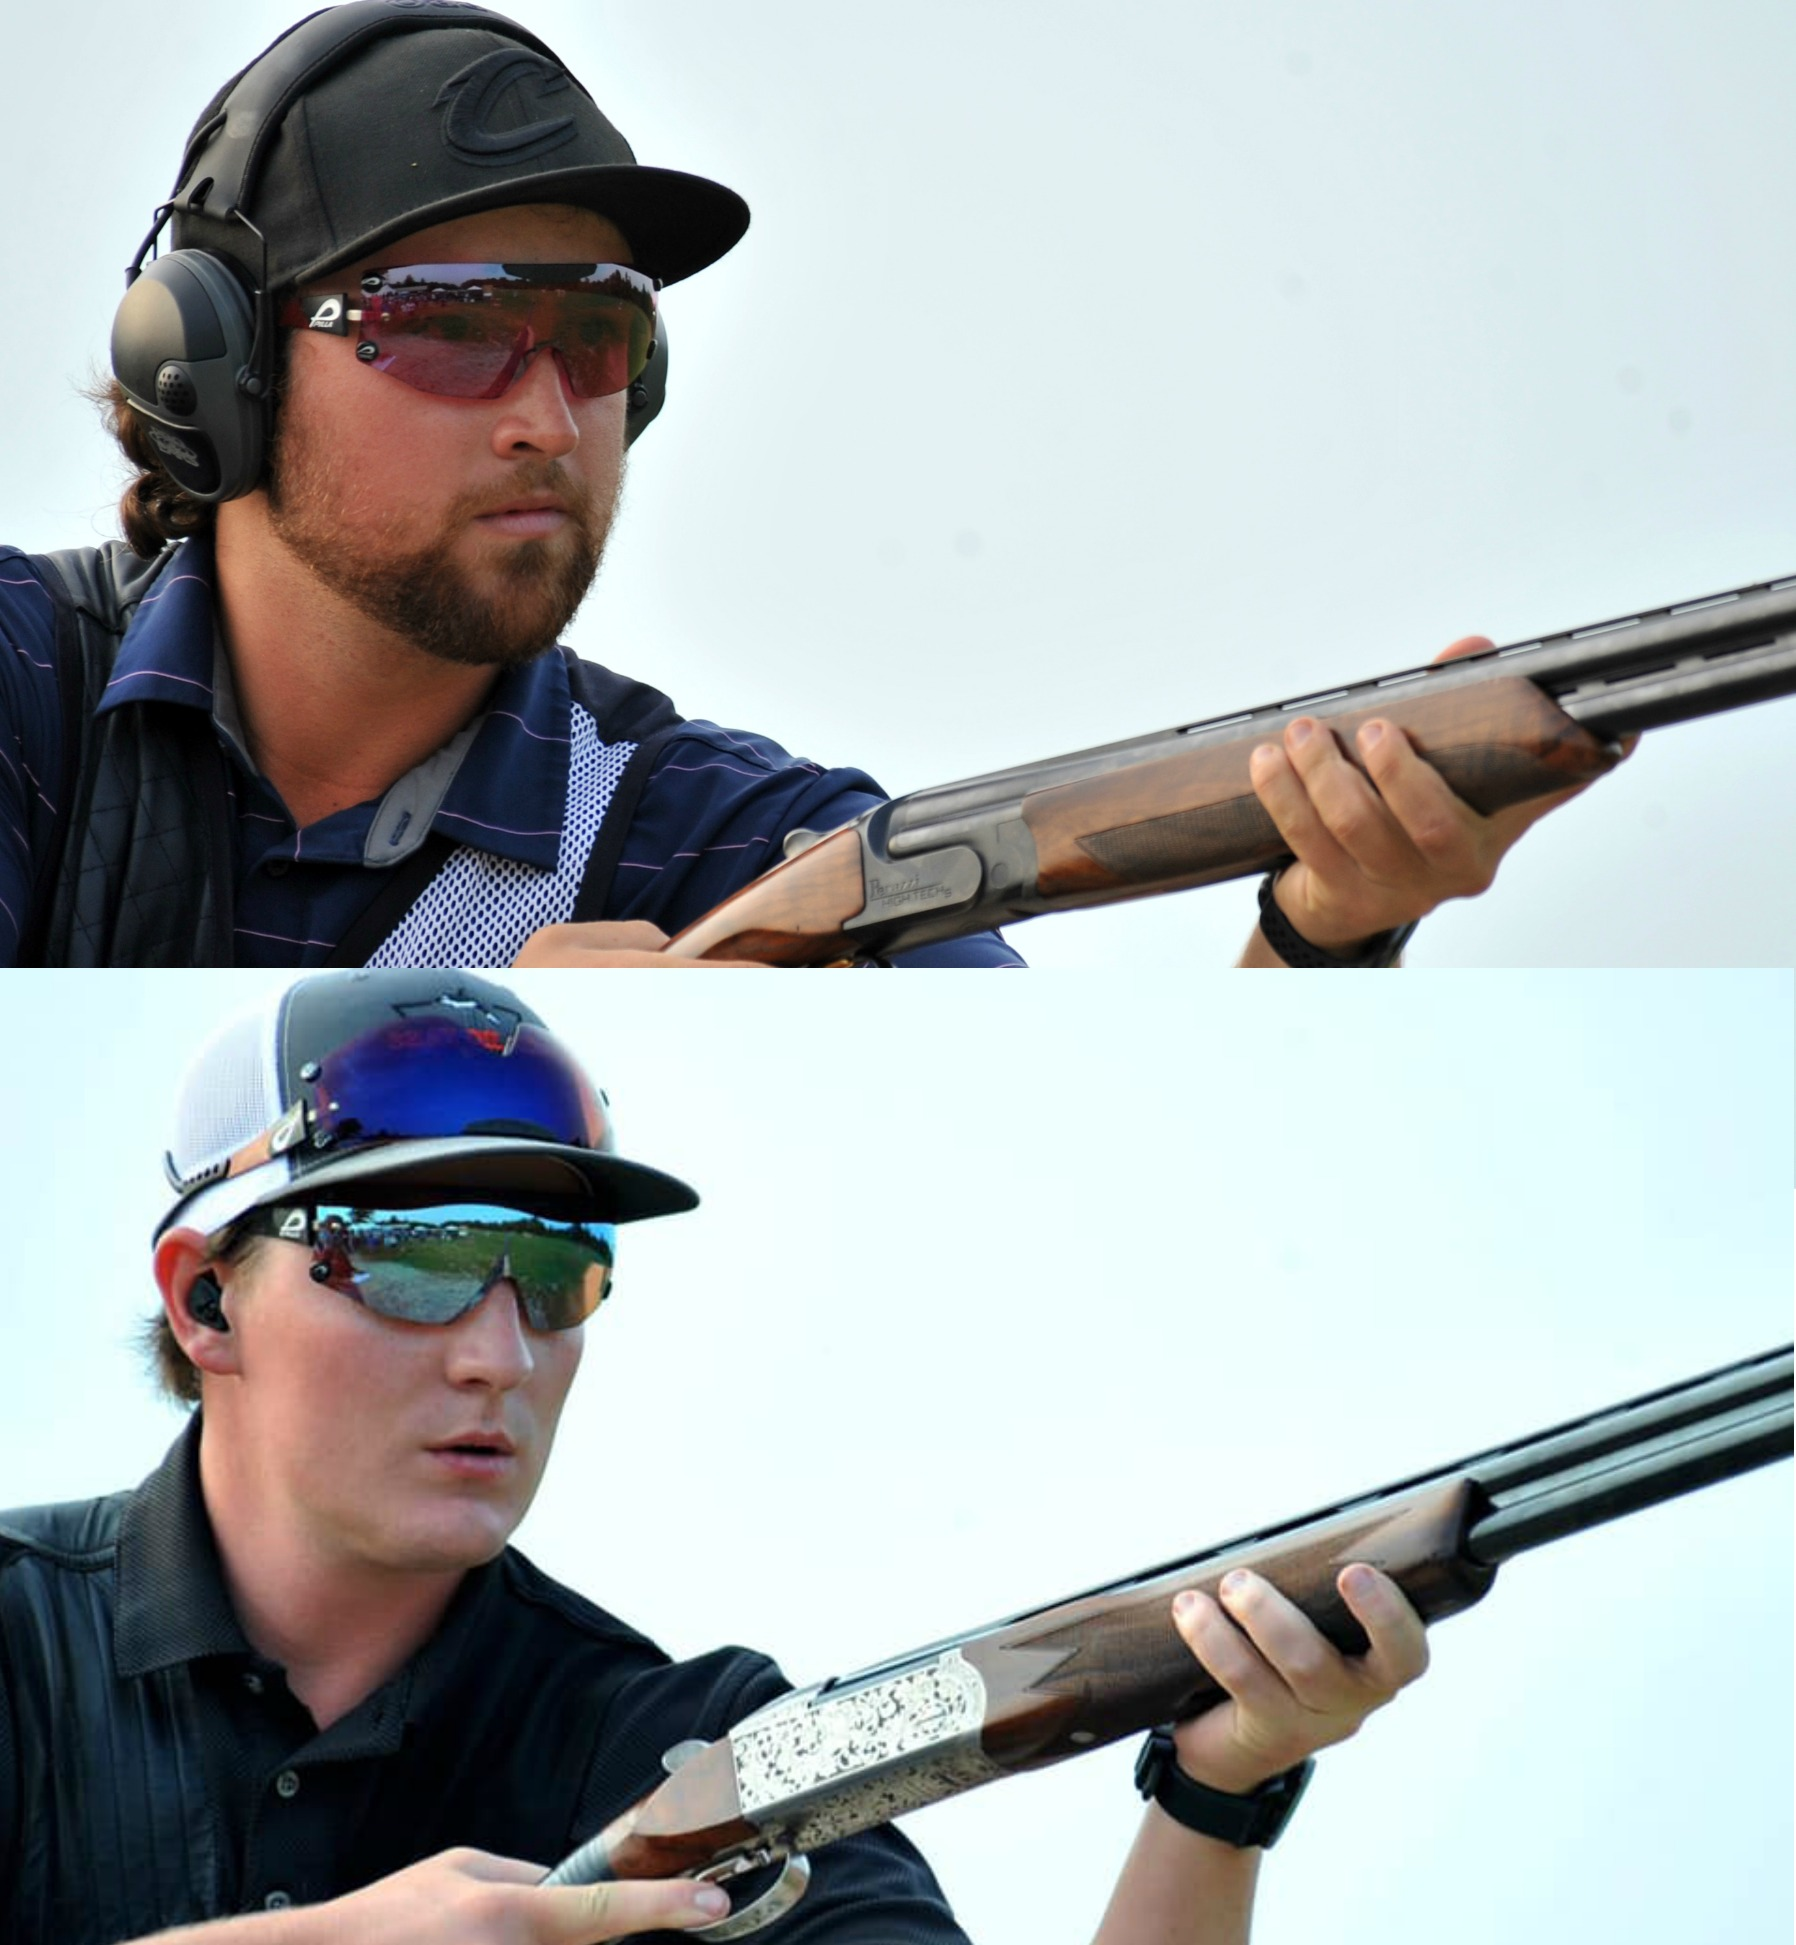 Team Gamebore Win at the US Open